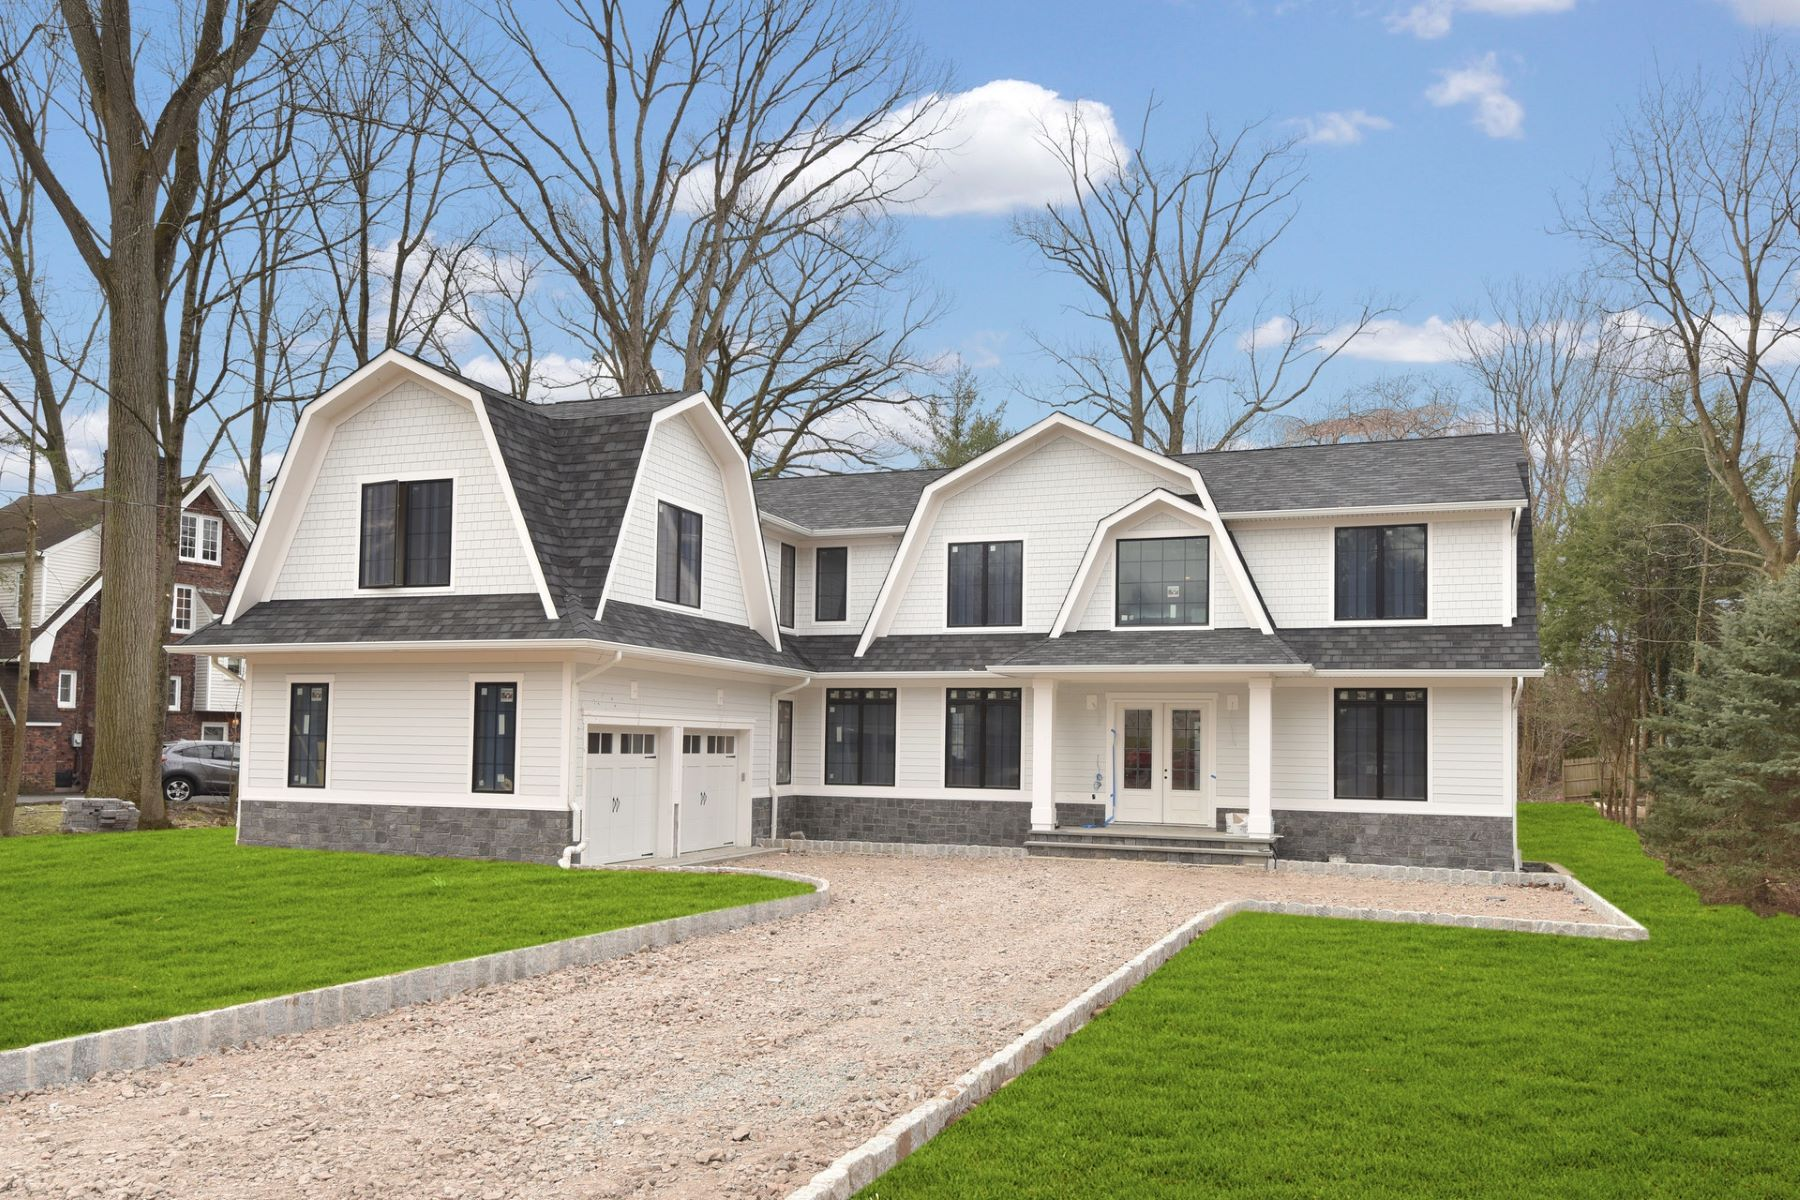 Single Family Homes for Sale at Hampton Style Colonial 50 Forest Road Tenafly, New Jersey 07670 United States